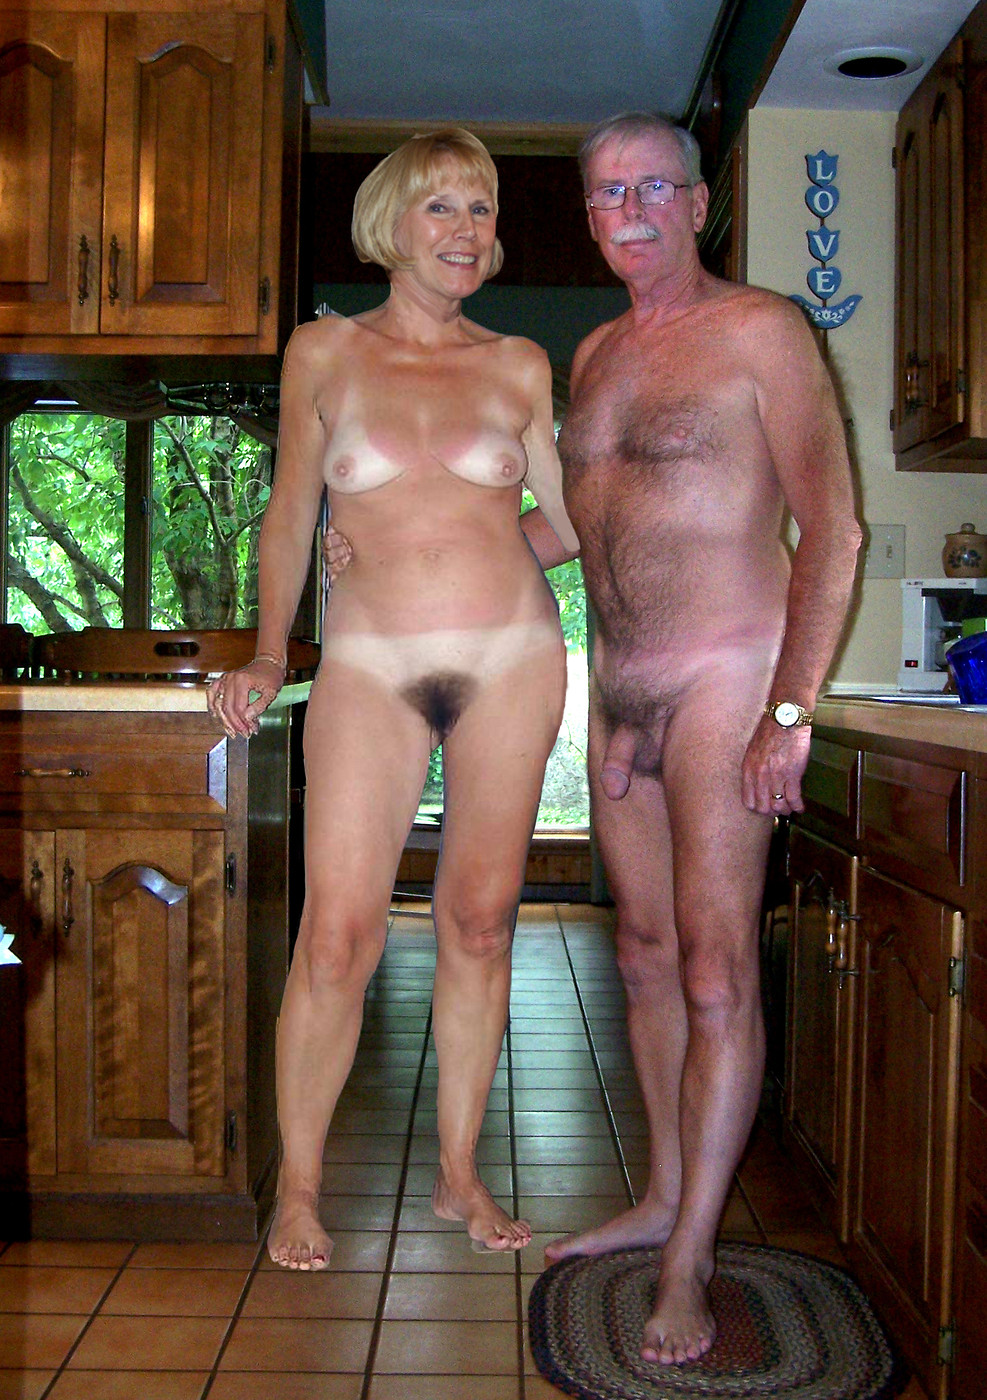 Shelley Brown and Paul Adams nude in the Adams' kitchen